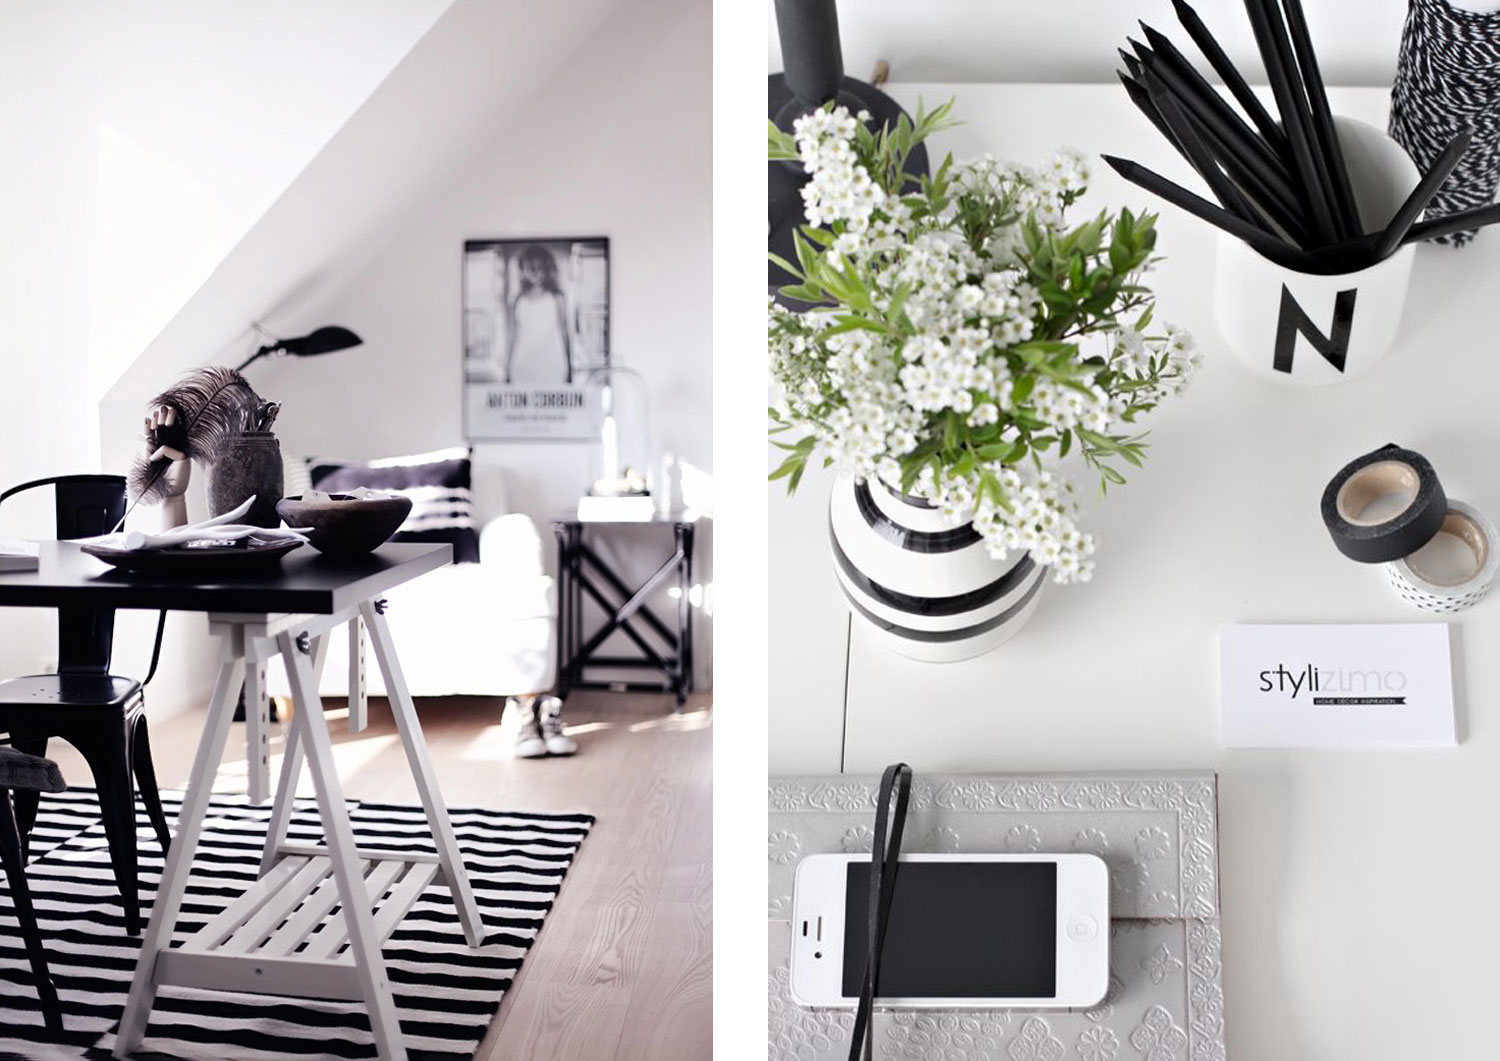 Home decor interior workspace studio inspiration black for Home decor inspiration